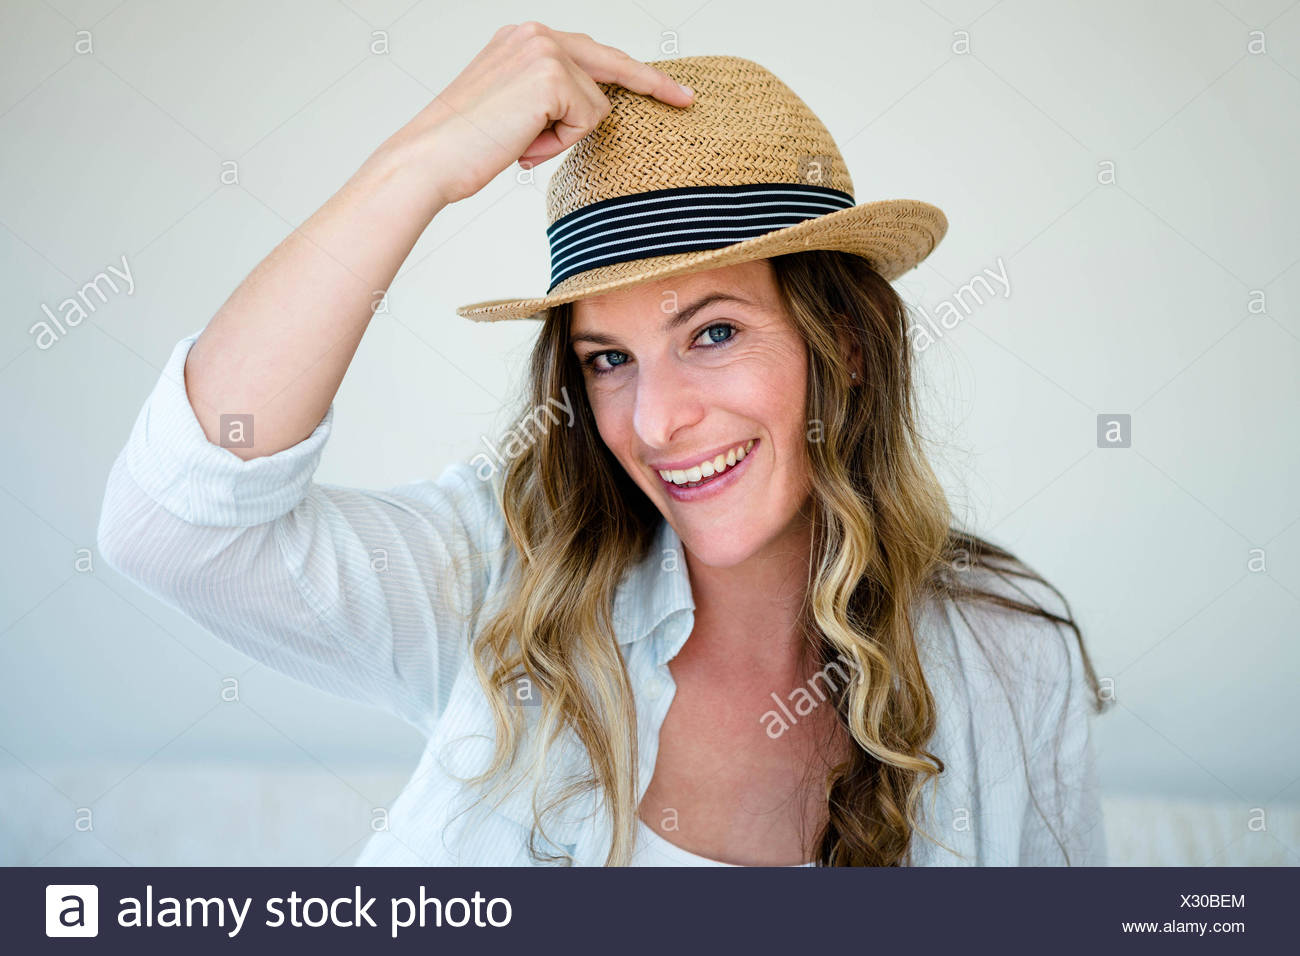 658a1afef6187 woman wearing a straw fedora smiling into the camera - Stock Image